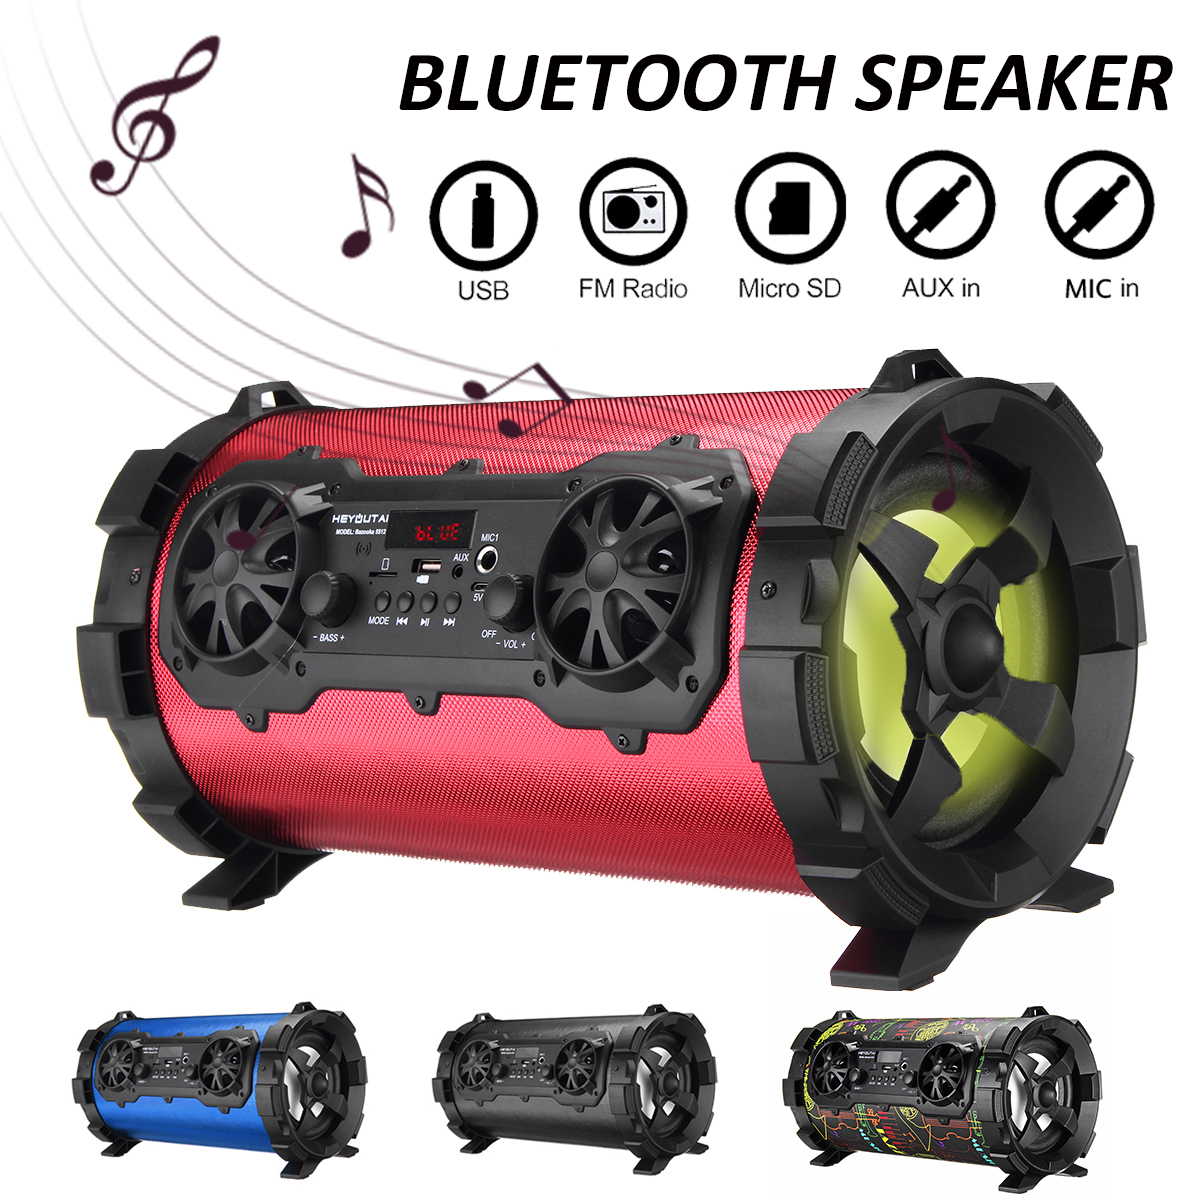 25W Wireless Bluetooth V4.1 Speaker Portable Loudspeaker Sound System AUX/USB/TF Card/Radio FM Outdoor Speaker Player Music 25w wireless bluetooth speaker stereo bass portable loudspeaker sound system aux usb tf card fm radio outdoor speaker subwoofer